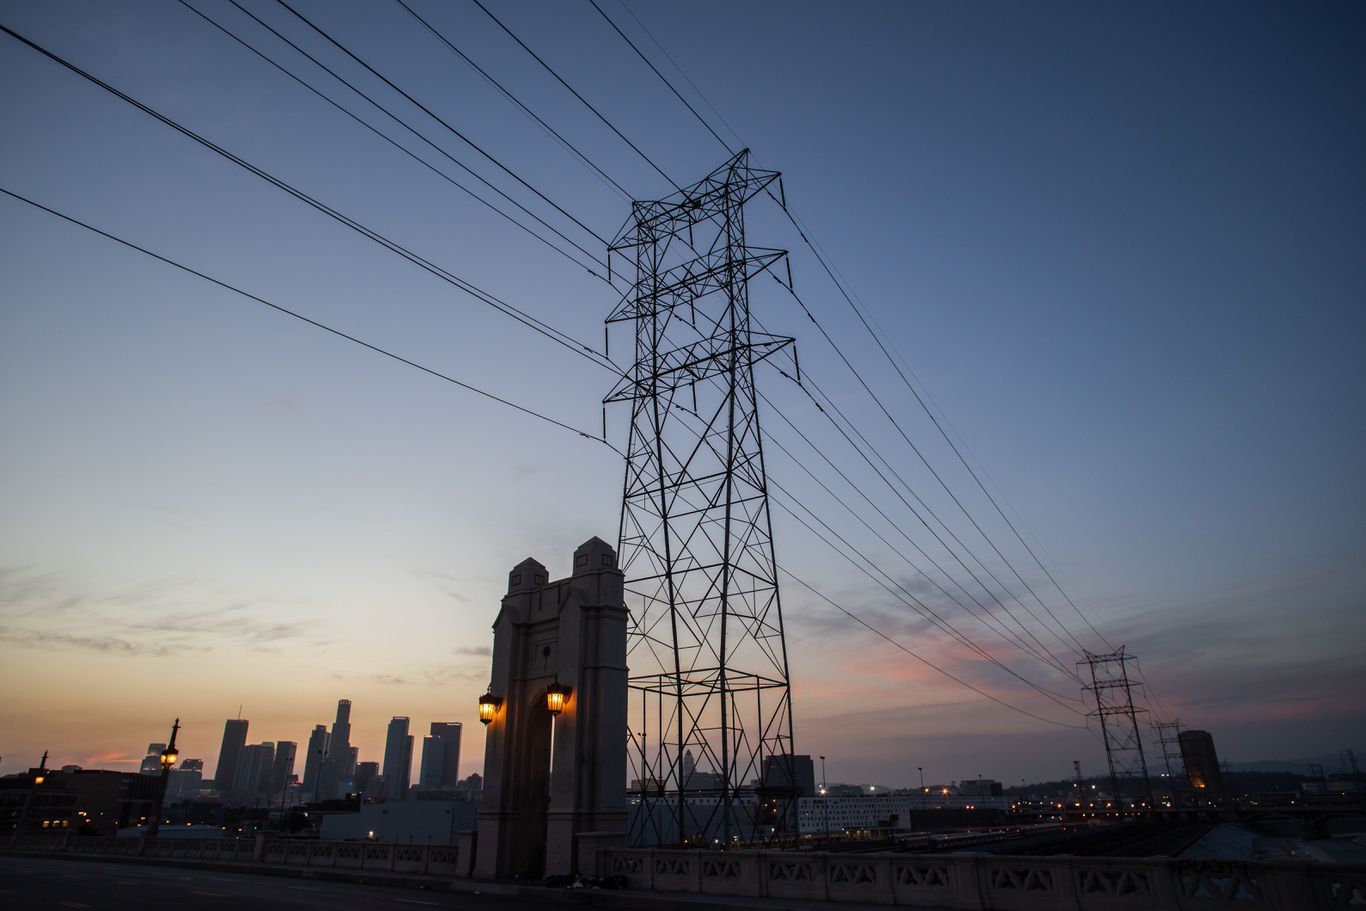 Over 300,000 Californians affected by PG&E blackouts